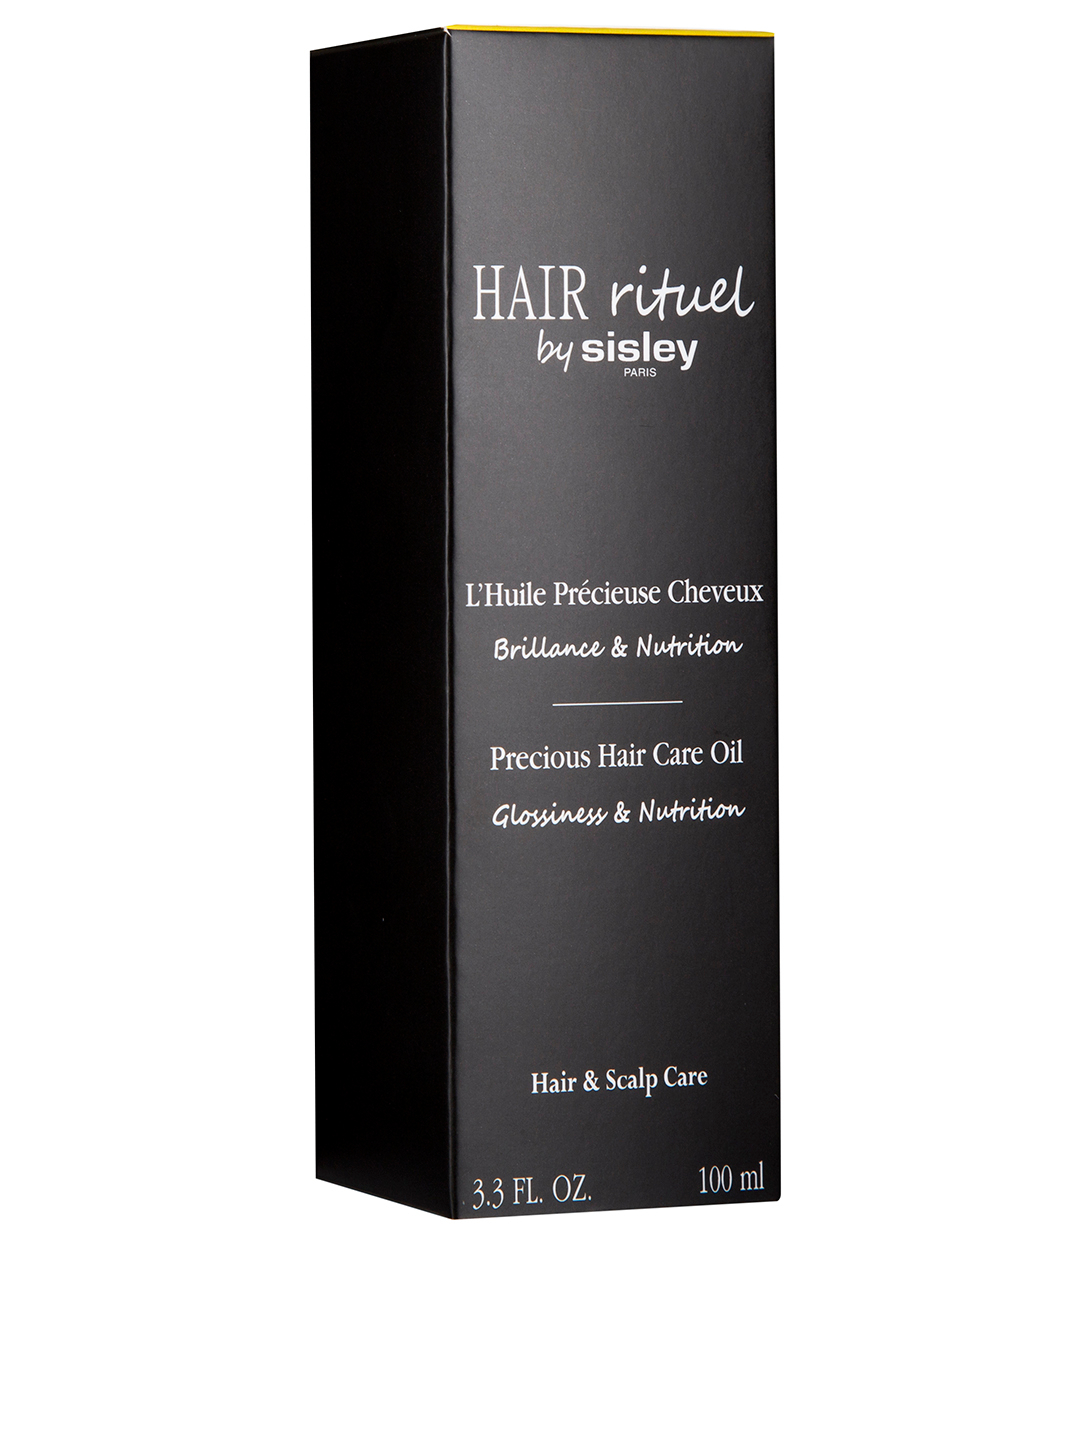 SISLEY-PARIS Precious Hair Care Oil for Glossiness and Nutrition Beauty